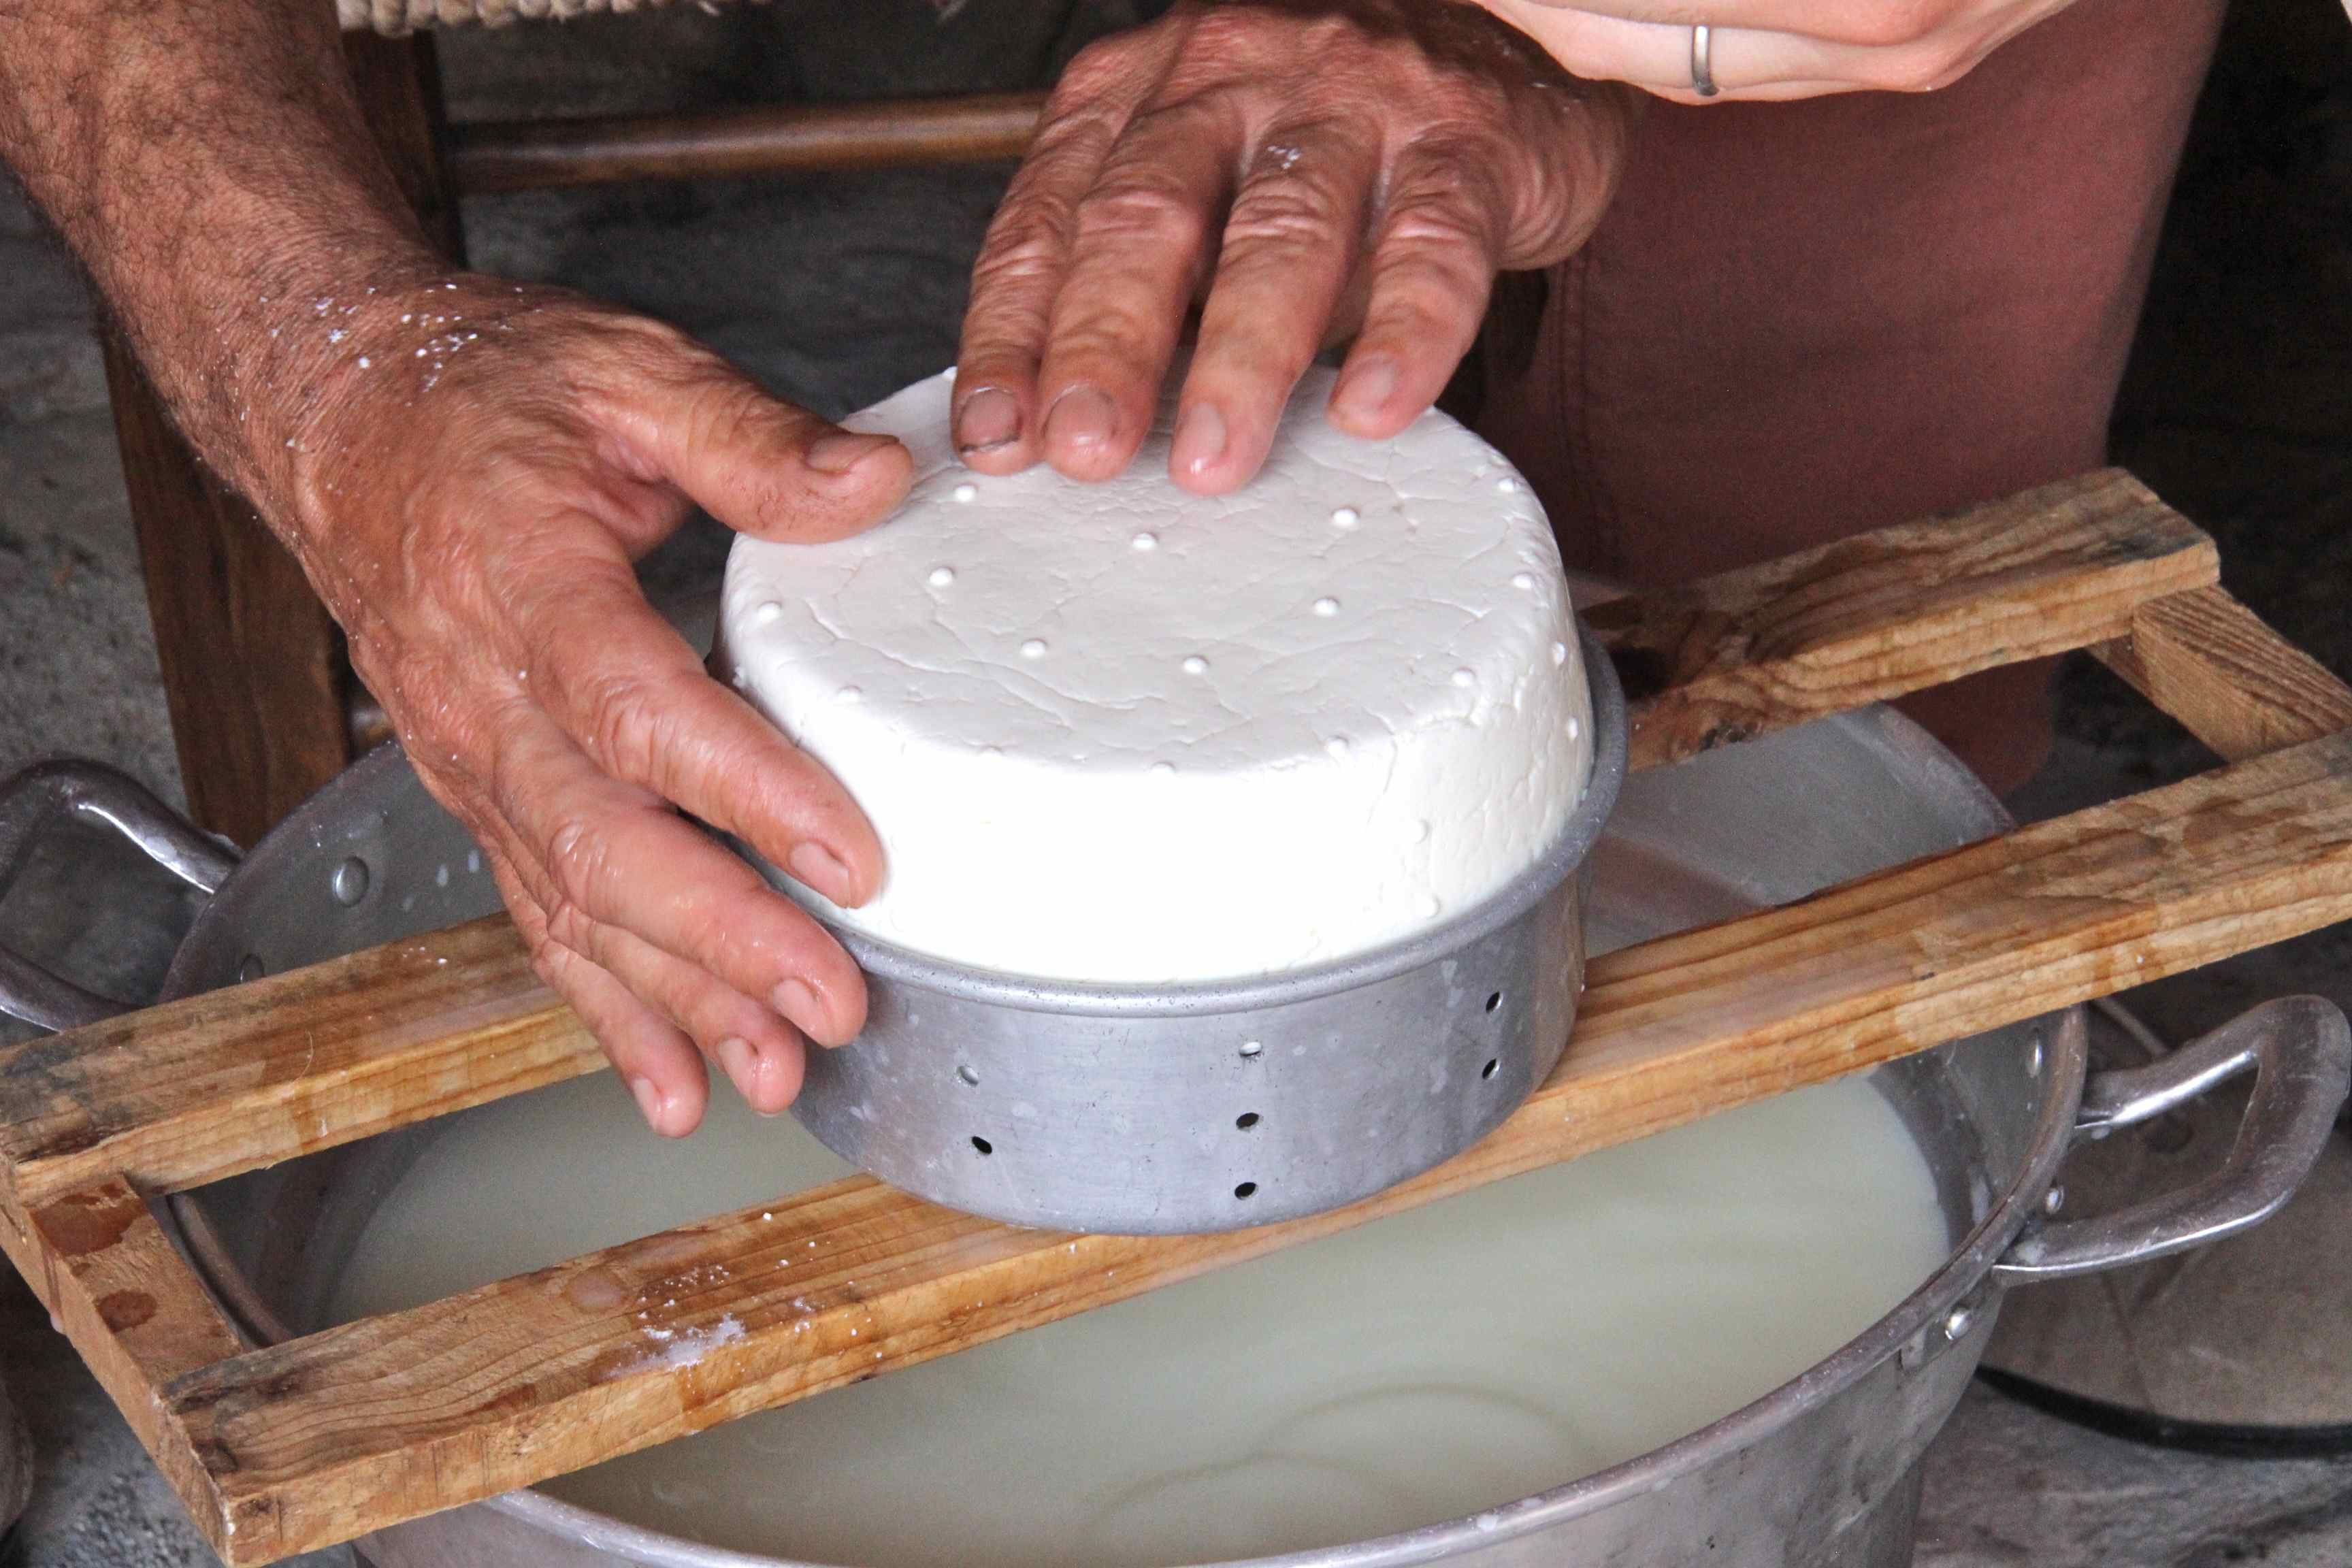 Goat cheese making